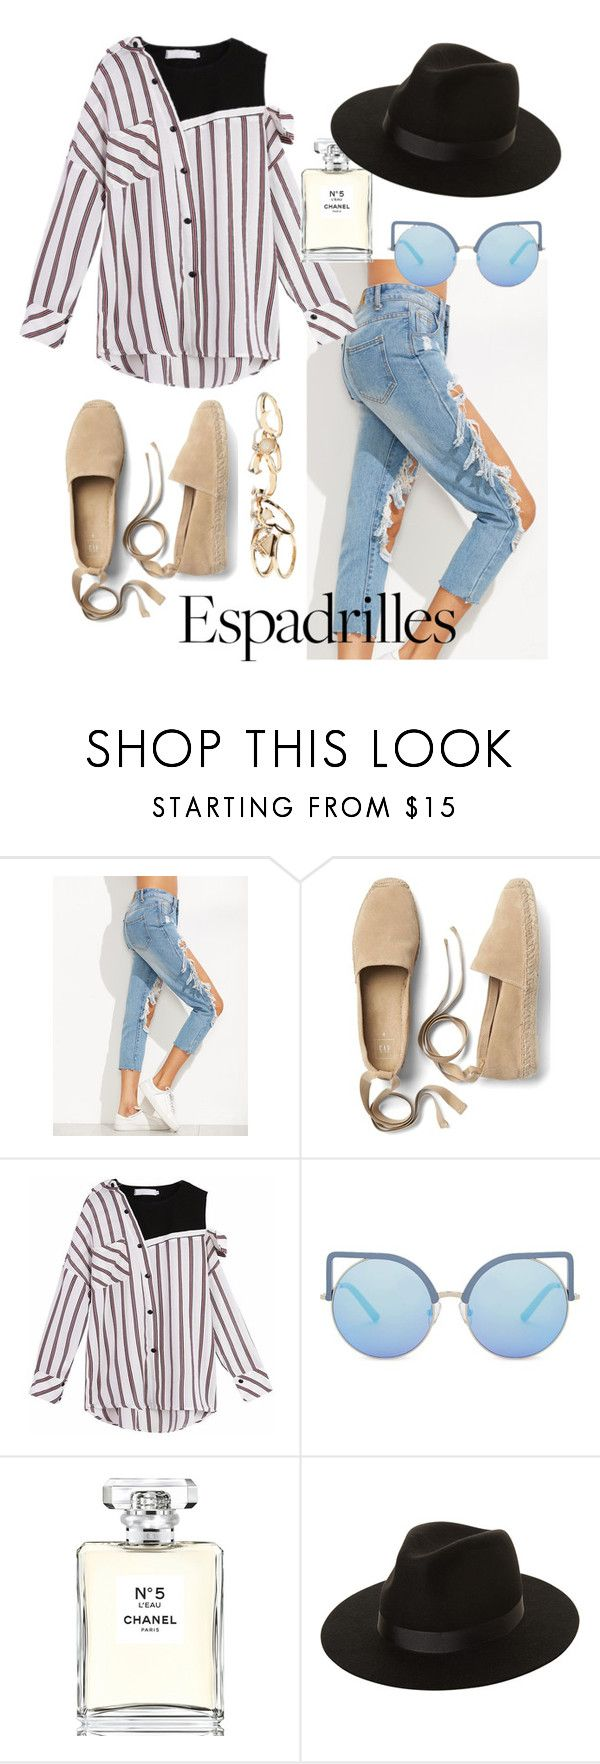 """""""Espadrilles for days"""" by robyn-bezuidenhout on Polyvore featuring Gap, Matthew Williamson, Chanel, Lack of Color and GUESS"""